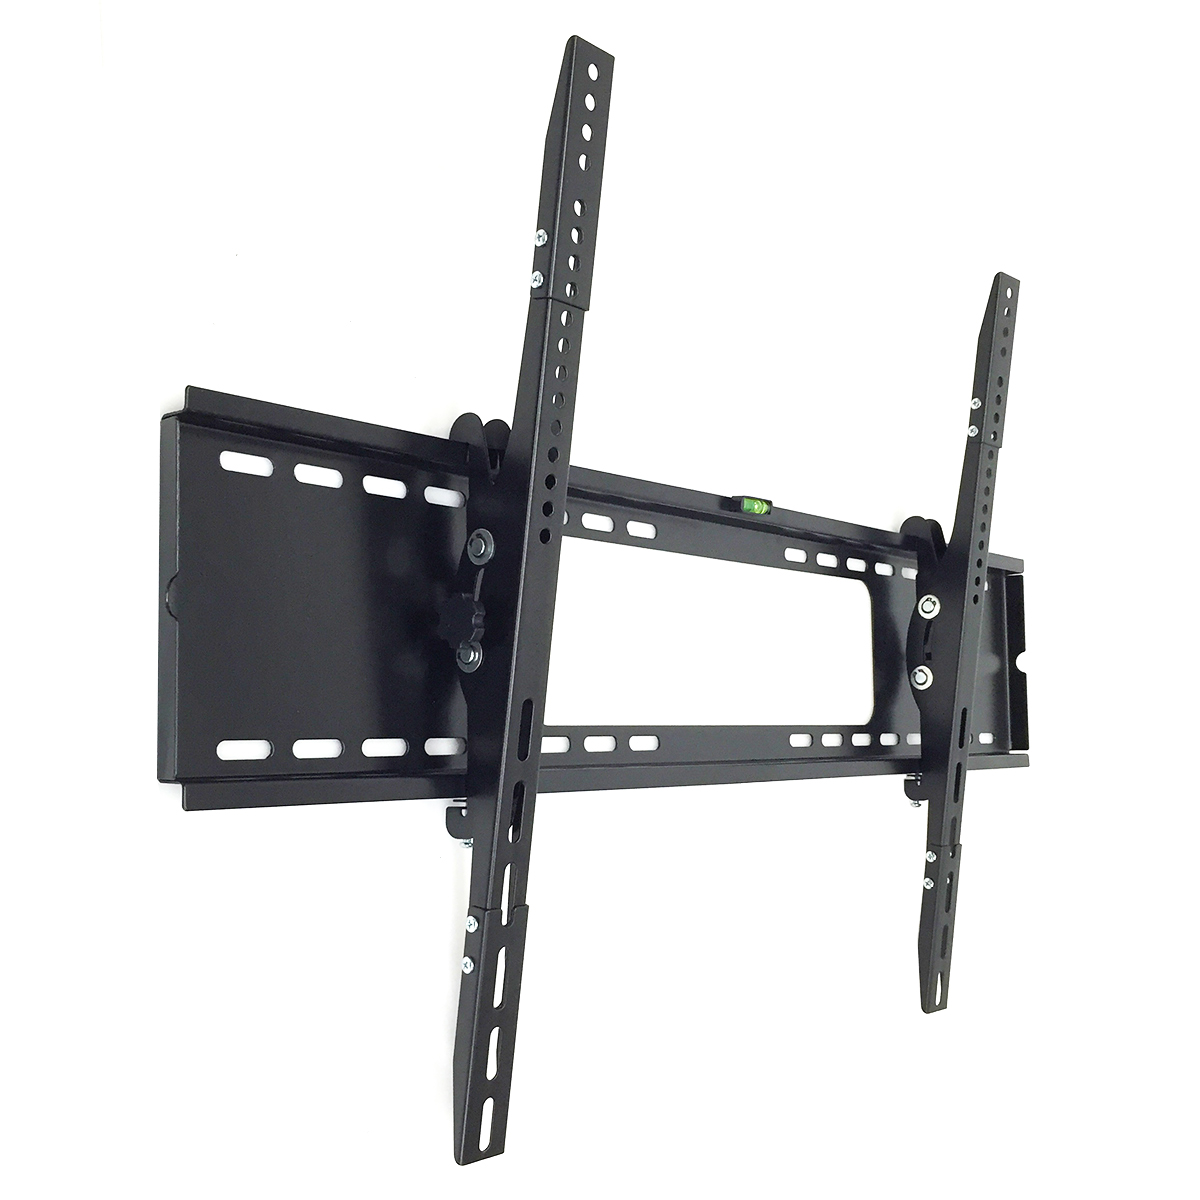 vizio lcd led tv tilt wall mount bracket for 40 42 46 50 55 60 70 80 95 inch ebay. Black Bedroom Furniture Sets. Home Design Ideas